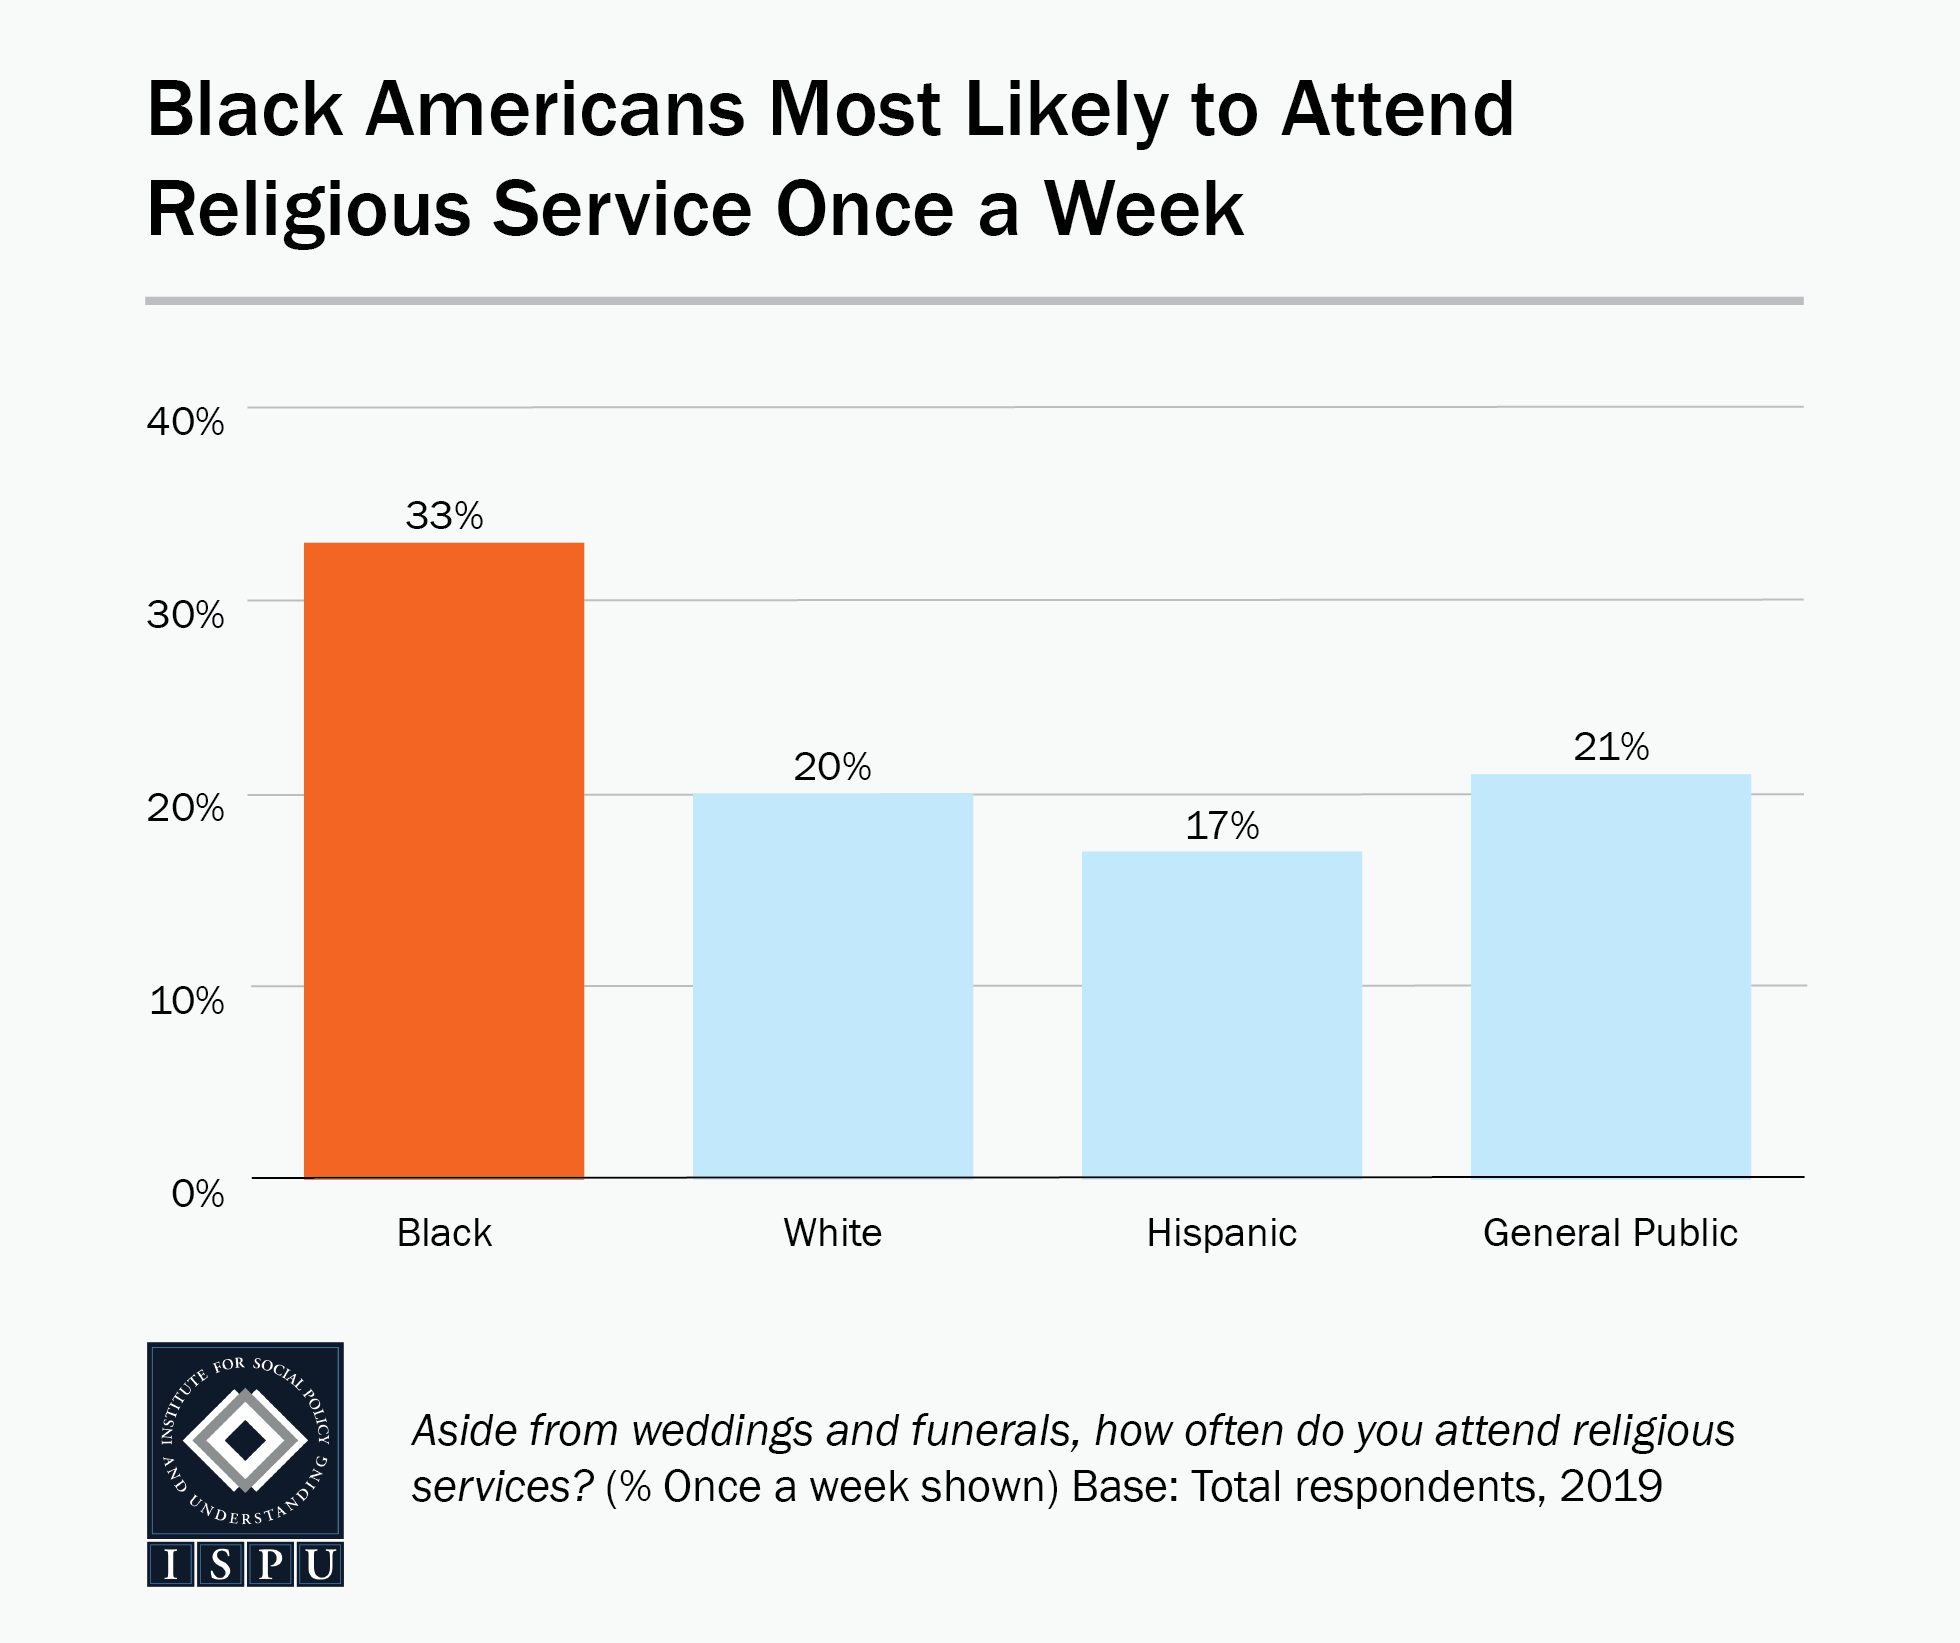 Bar graph showing that Black Americans (33%) are most likely to attend religious service once a week